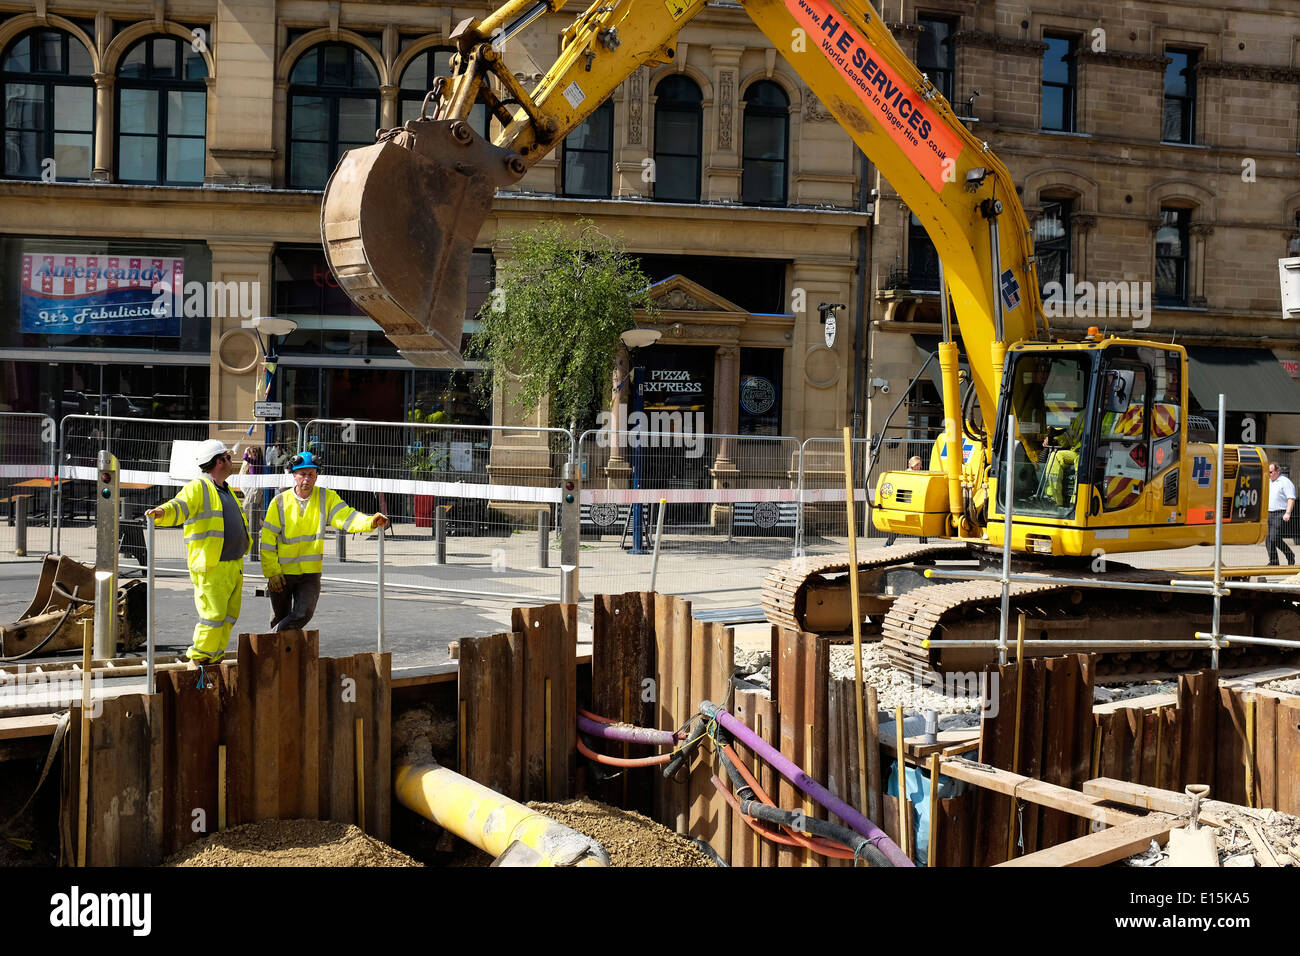 Utilities works in Manchester city centre UK - Stock Image